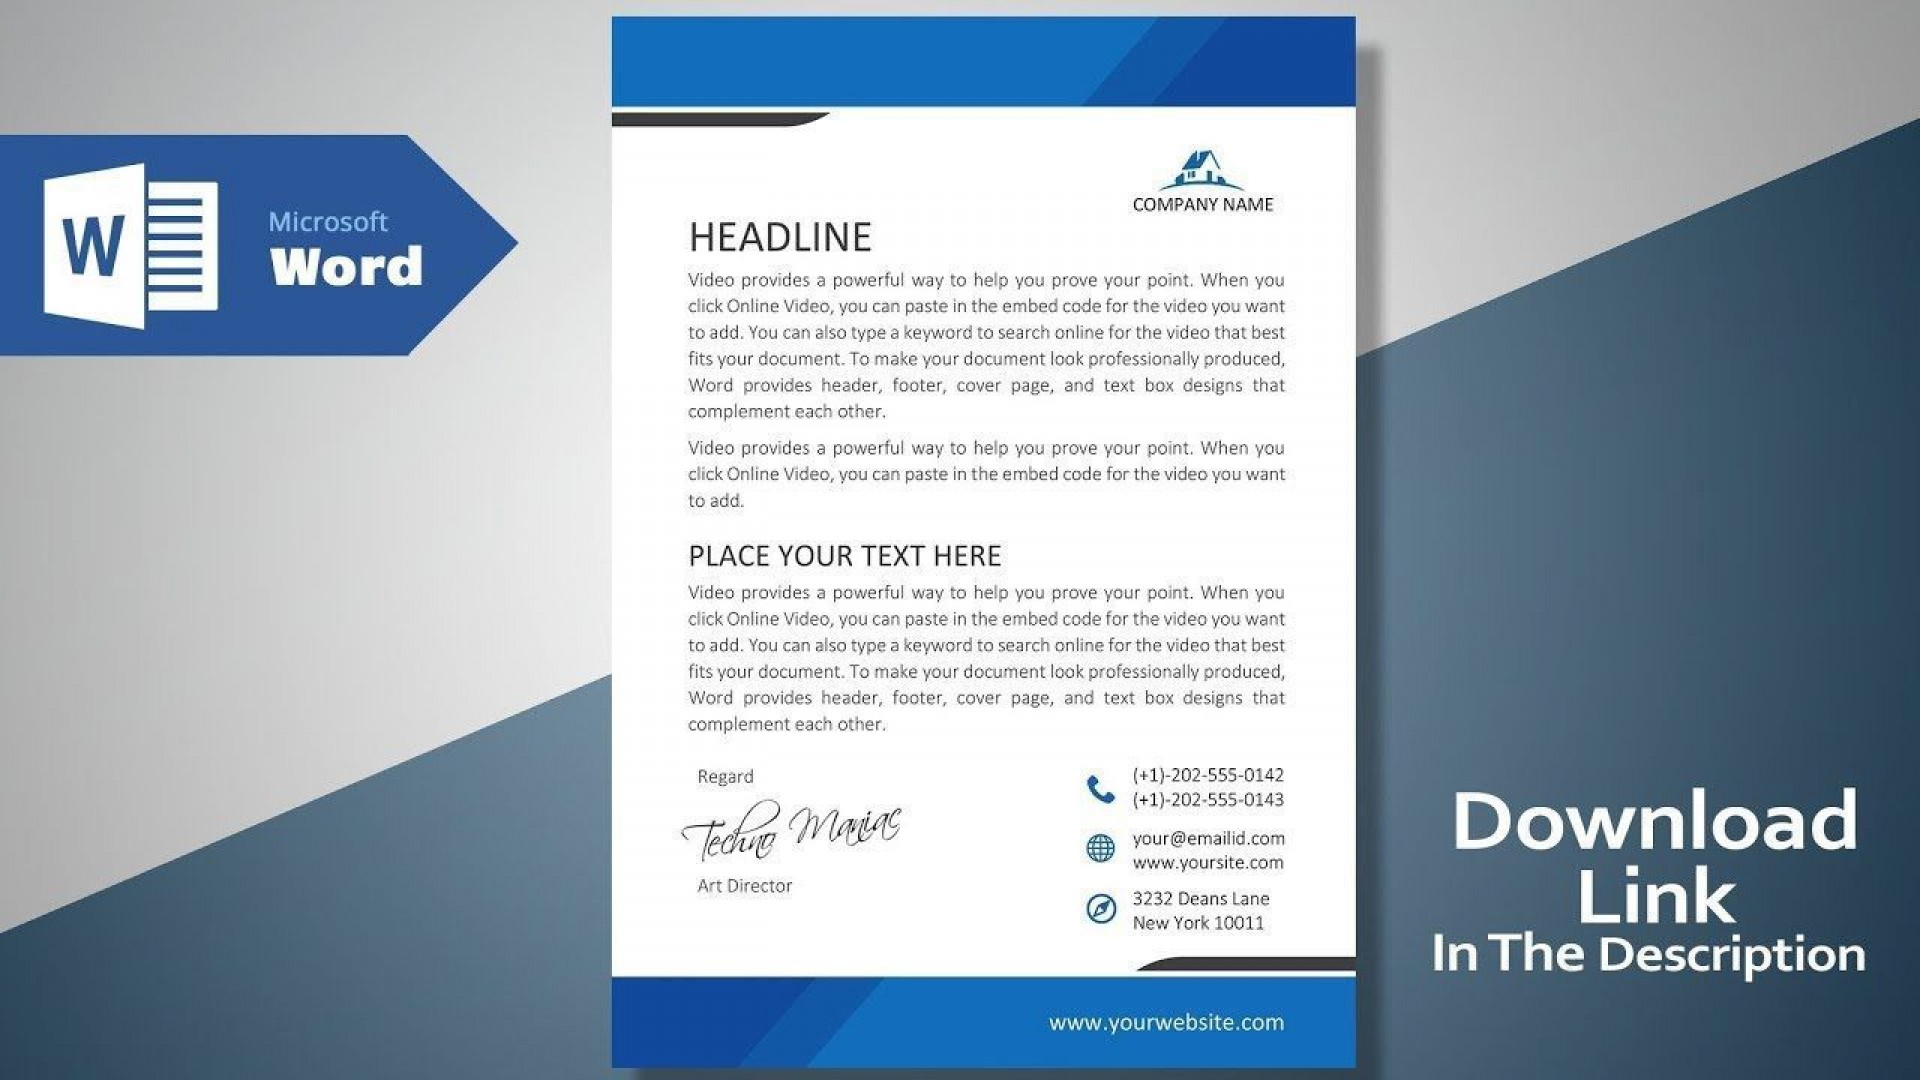 003 Phenomenal Microsoft Word Free Template Highest Clarity  Templates For Report Invoice Uk Download1920